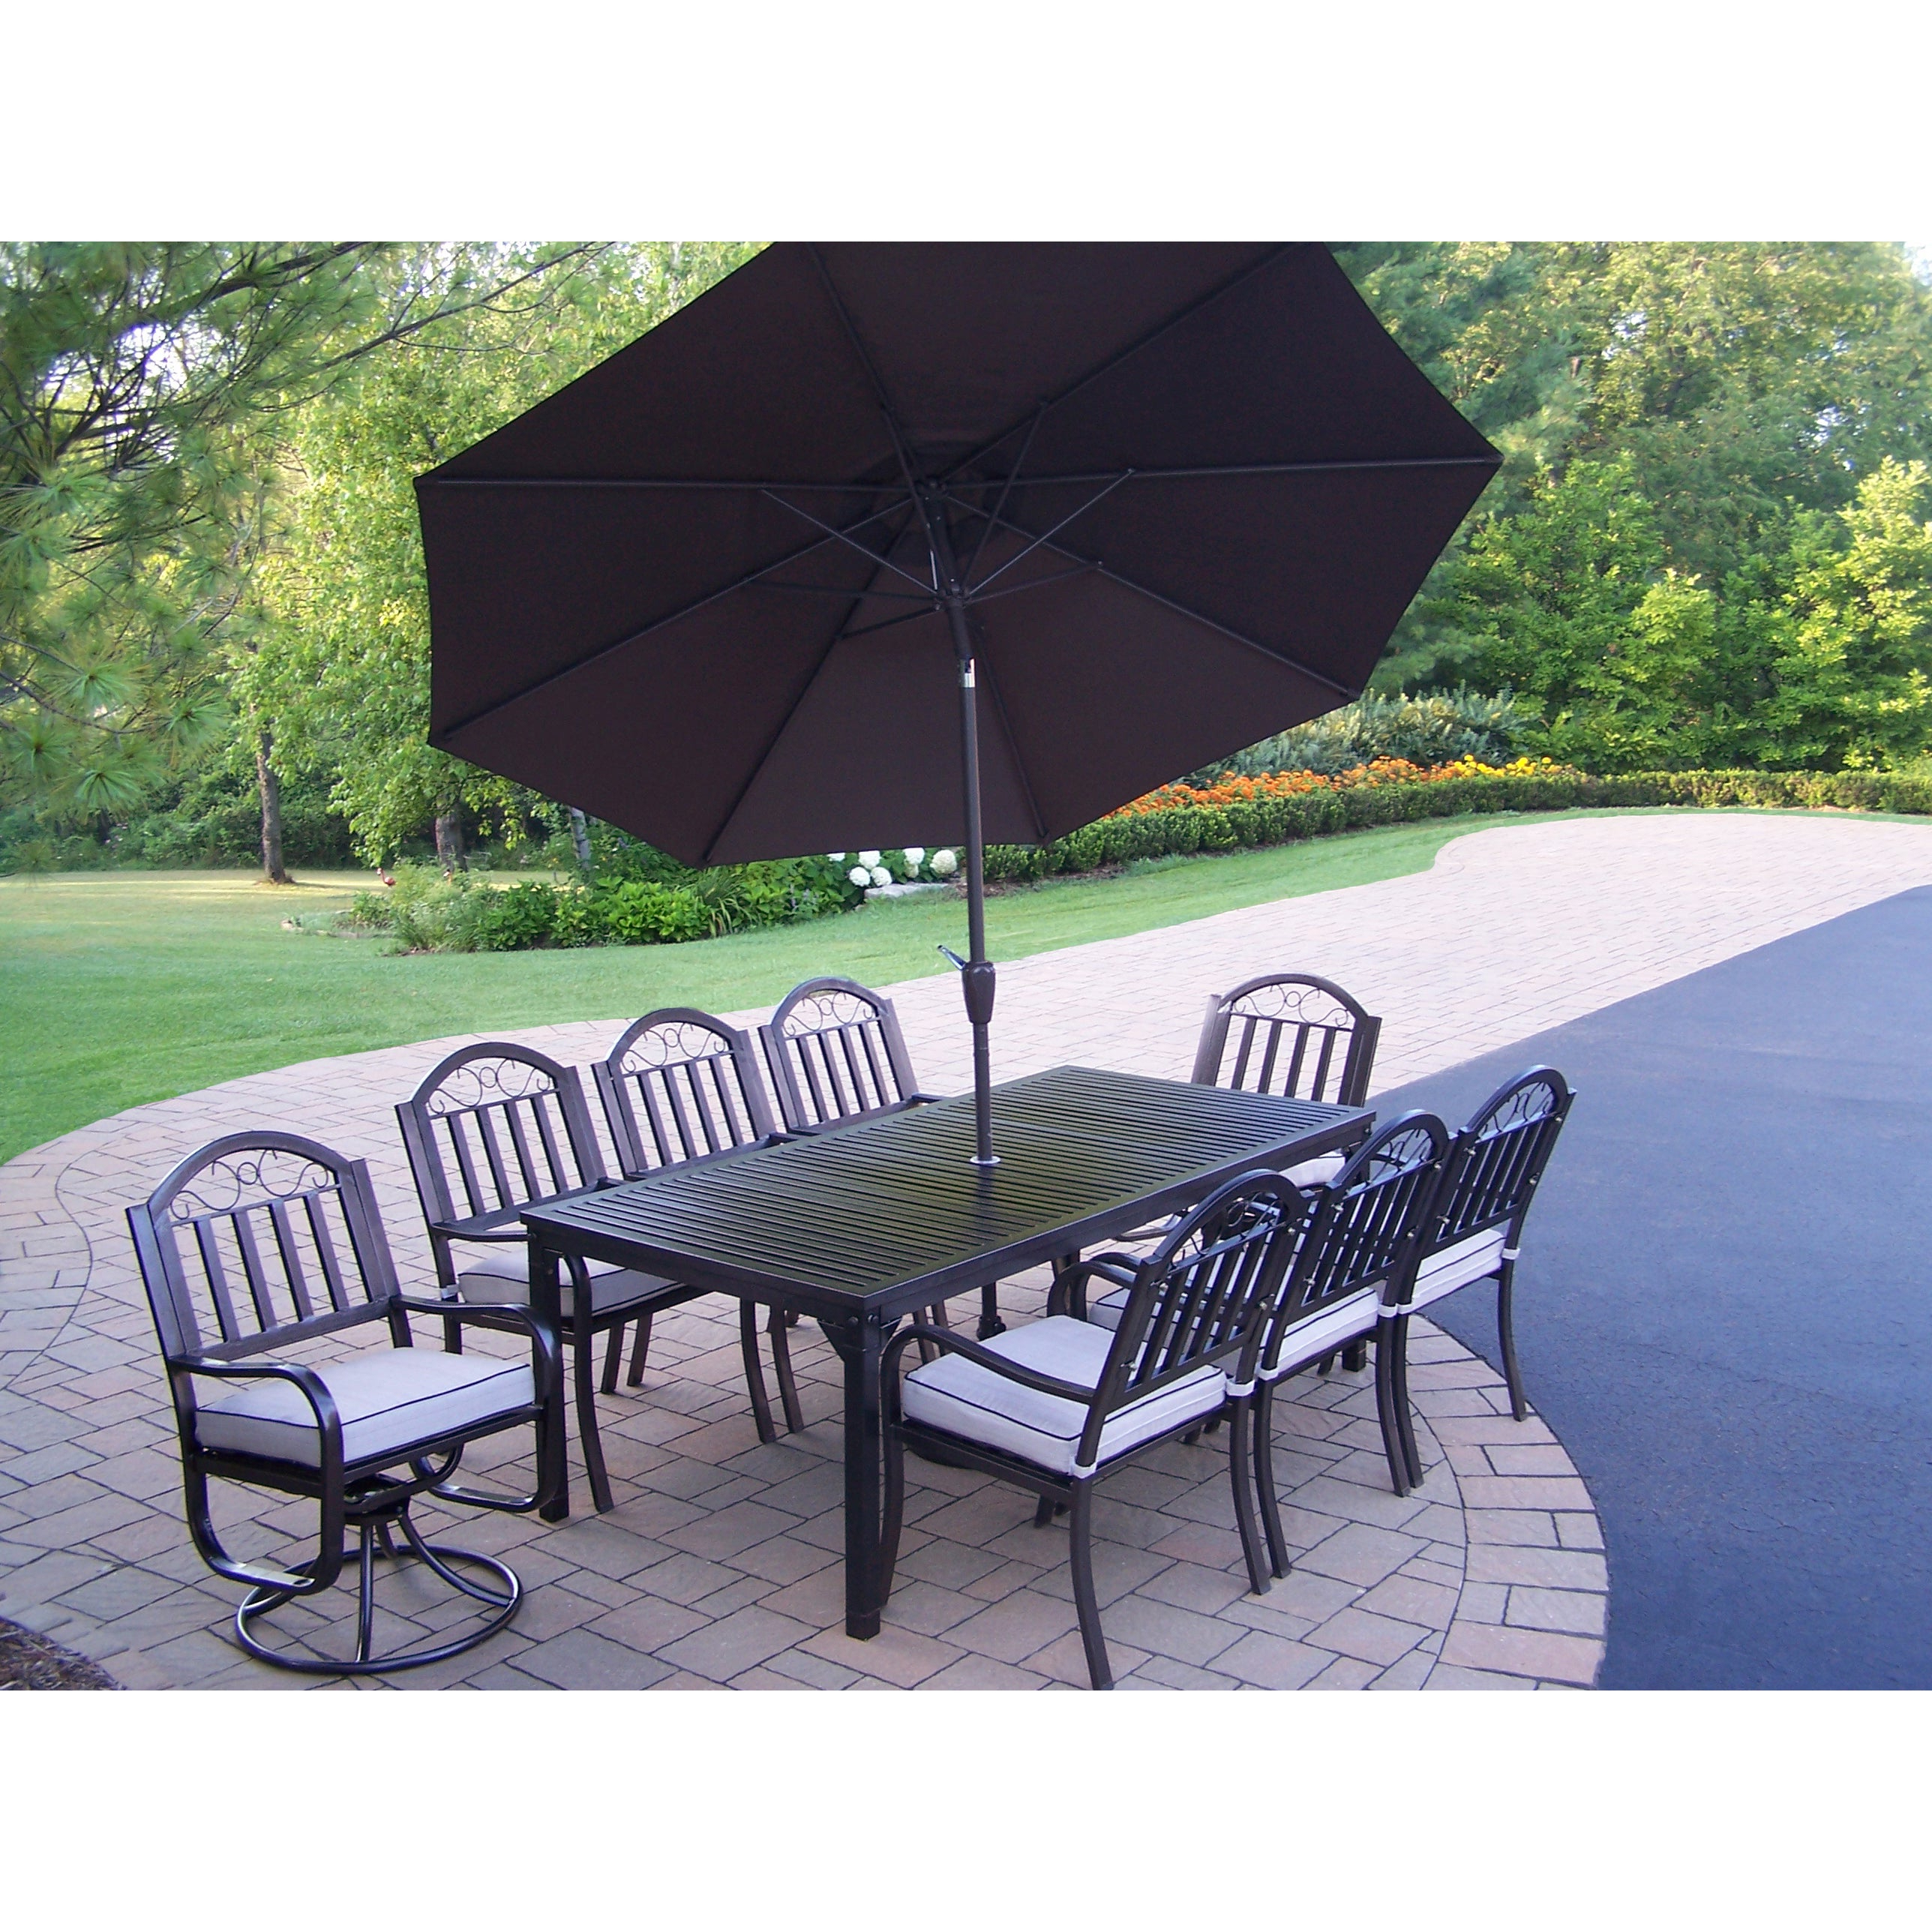 Buy Size 11 Piece Sets Outdoor Dining Sets Online At Overstock (Gallery 14 of 20)